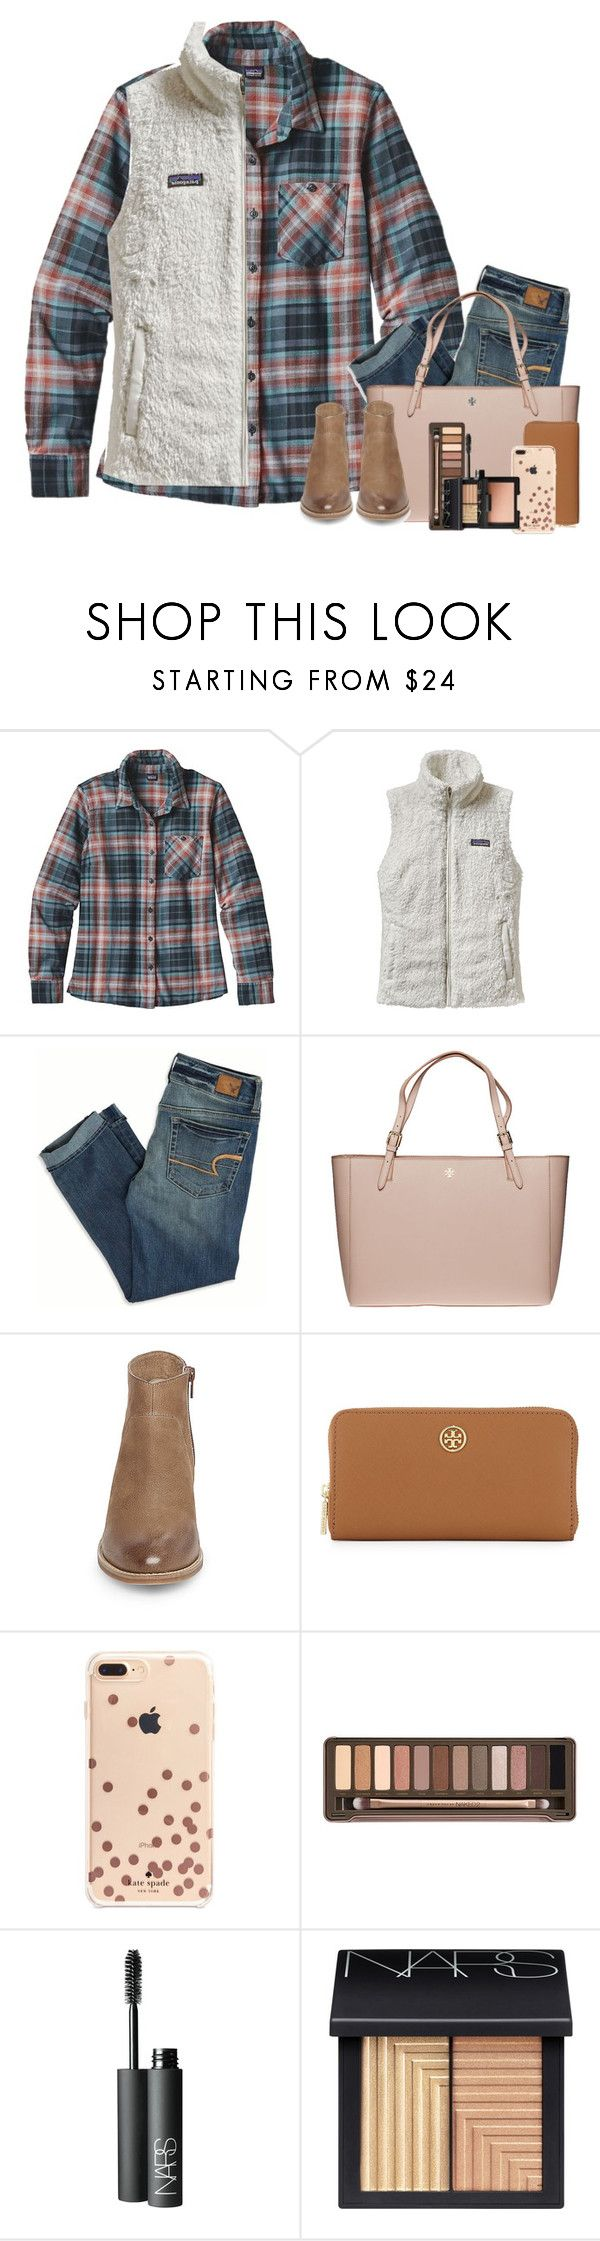 """""""Snow Day!!!!! ❄️"""" by smiles-iv ❤ liked on Polyvore featuring Patagonia, American Eagle Outfitters, Tory Burch, Steve Madden, Kate Spade, Urban Decay and NARS Cosmetics"""